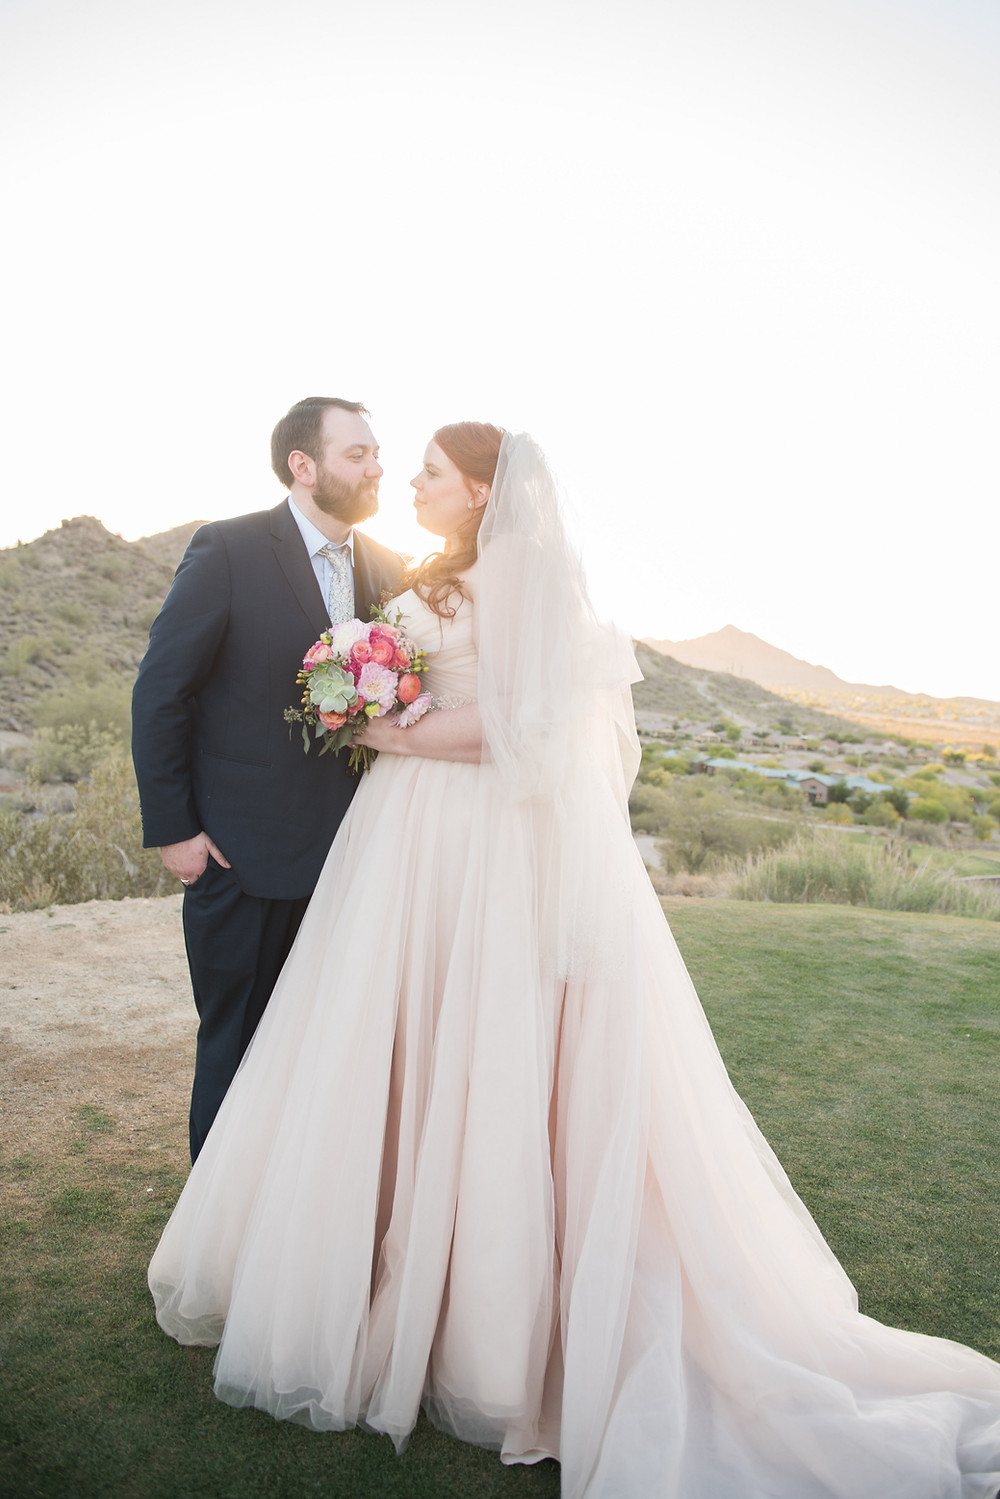 The bride and groom with the beautiful Arizona mountains behind them.